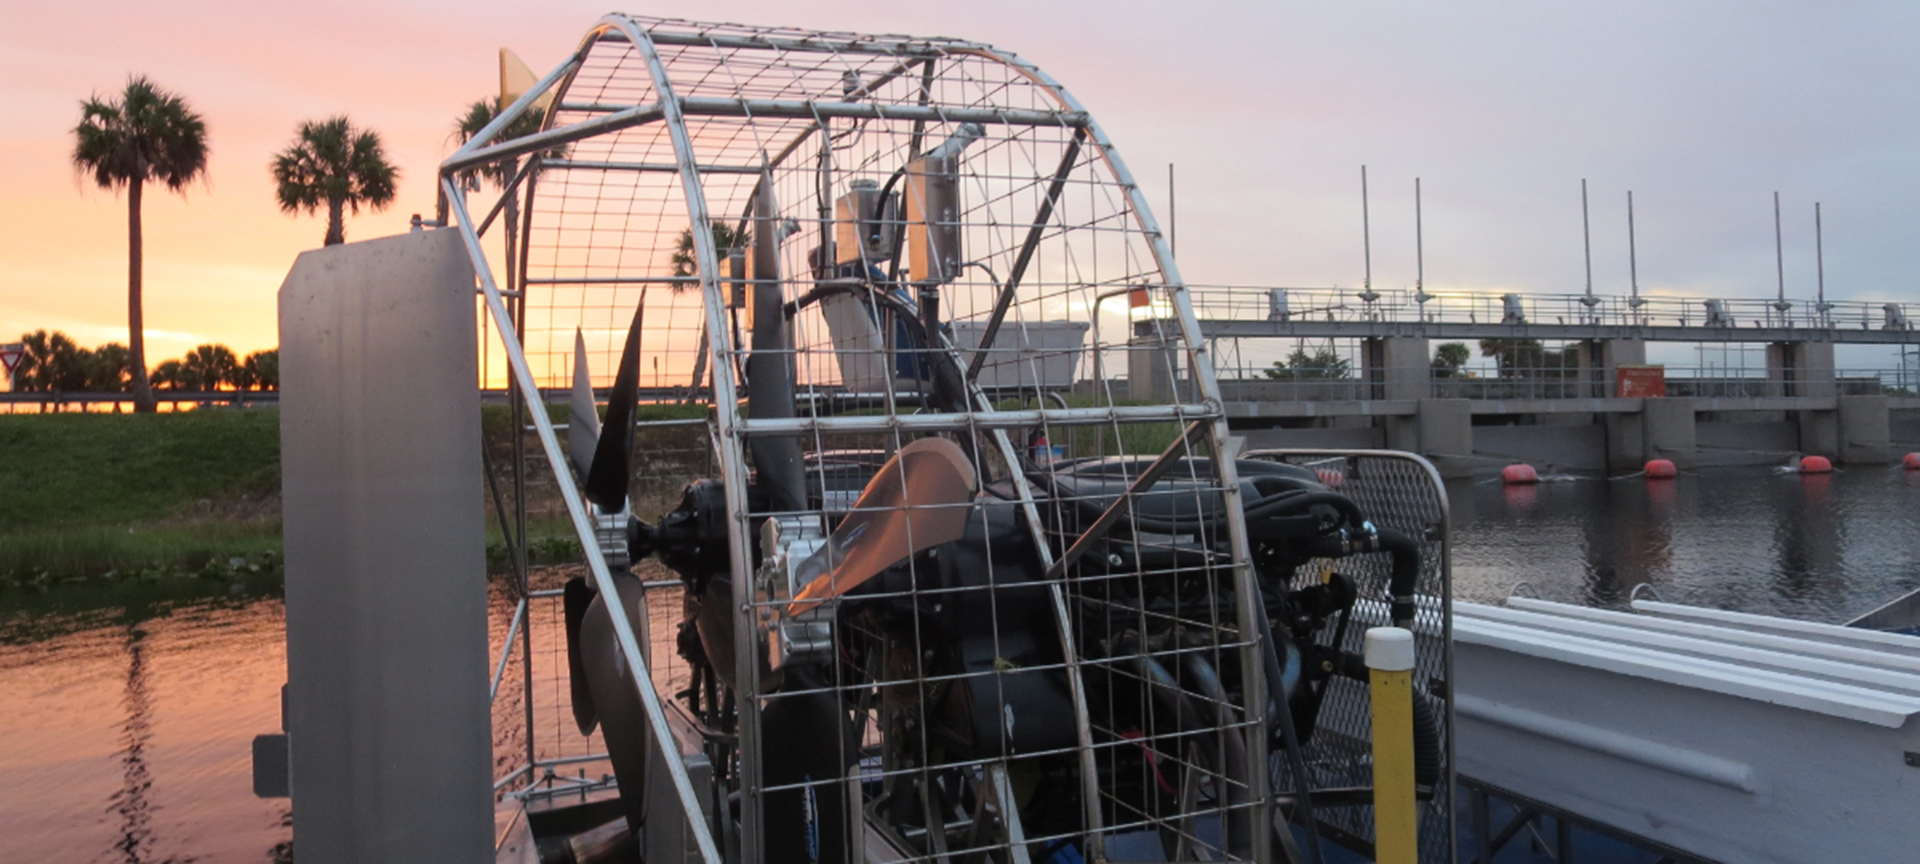 I got to take an airboat ride through the Everglades, looking for alligators and other local wildlife! This was particularly special since the tour started at sunset and came back after dark so you can experience the area in several different ways.